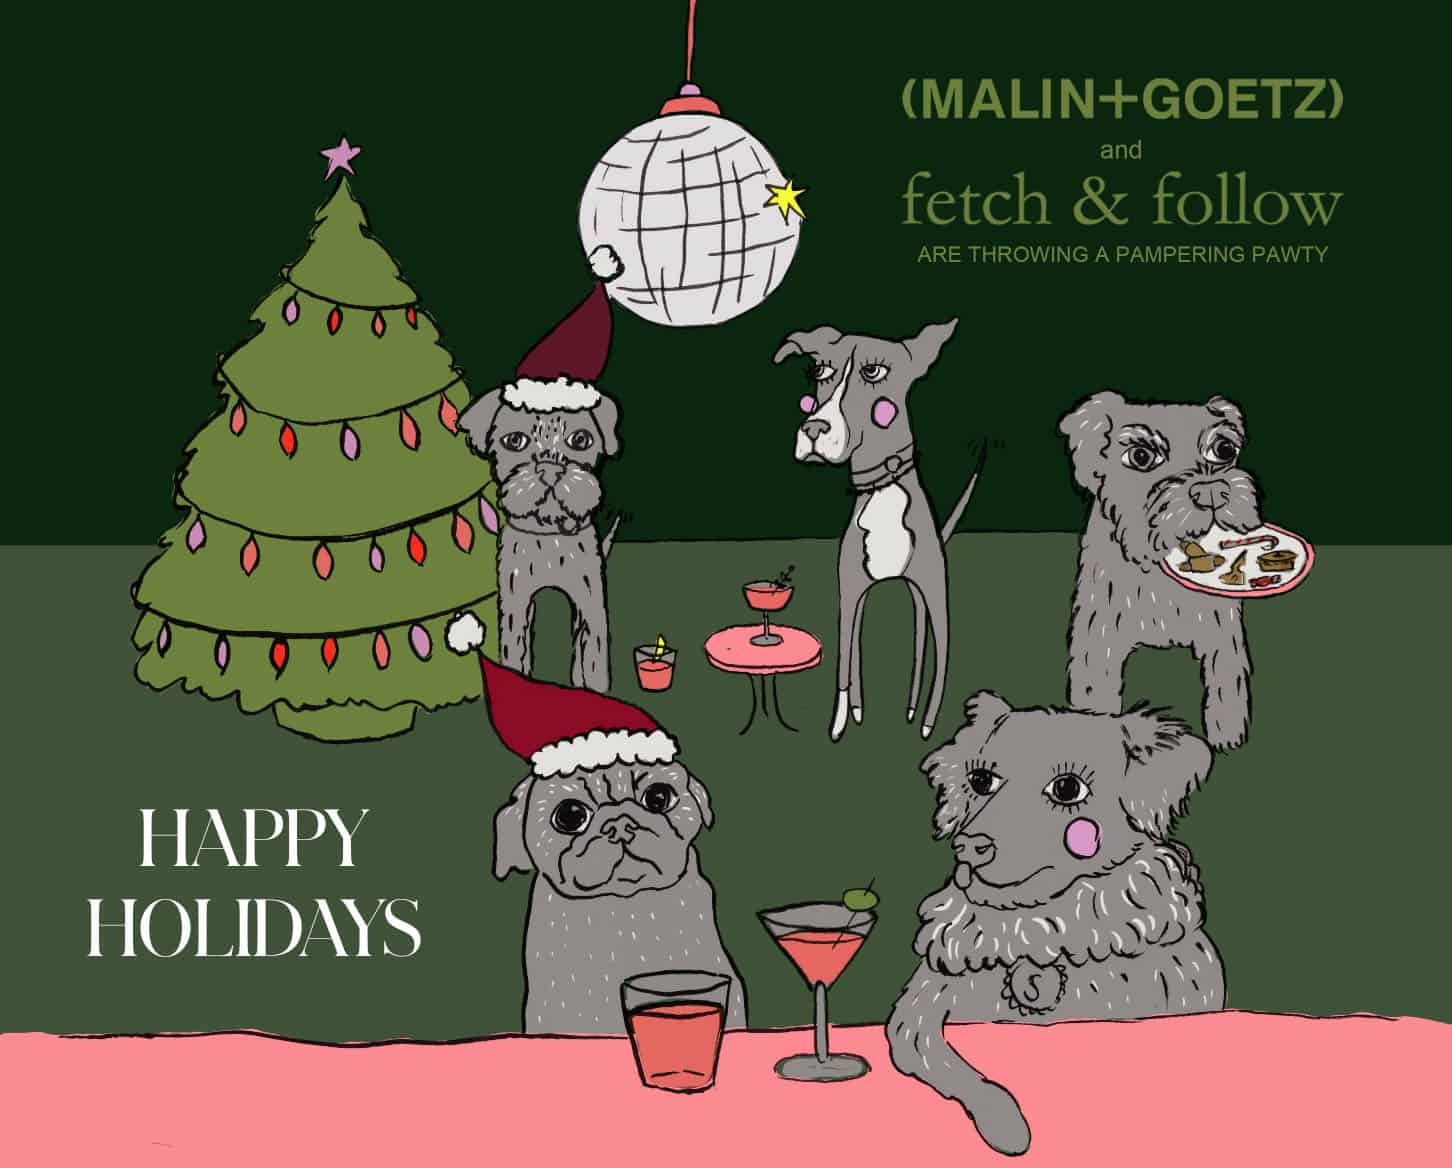 Fetch & Follow Festive Pamper Party